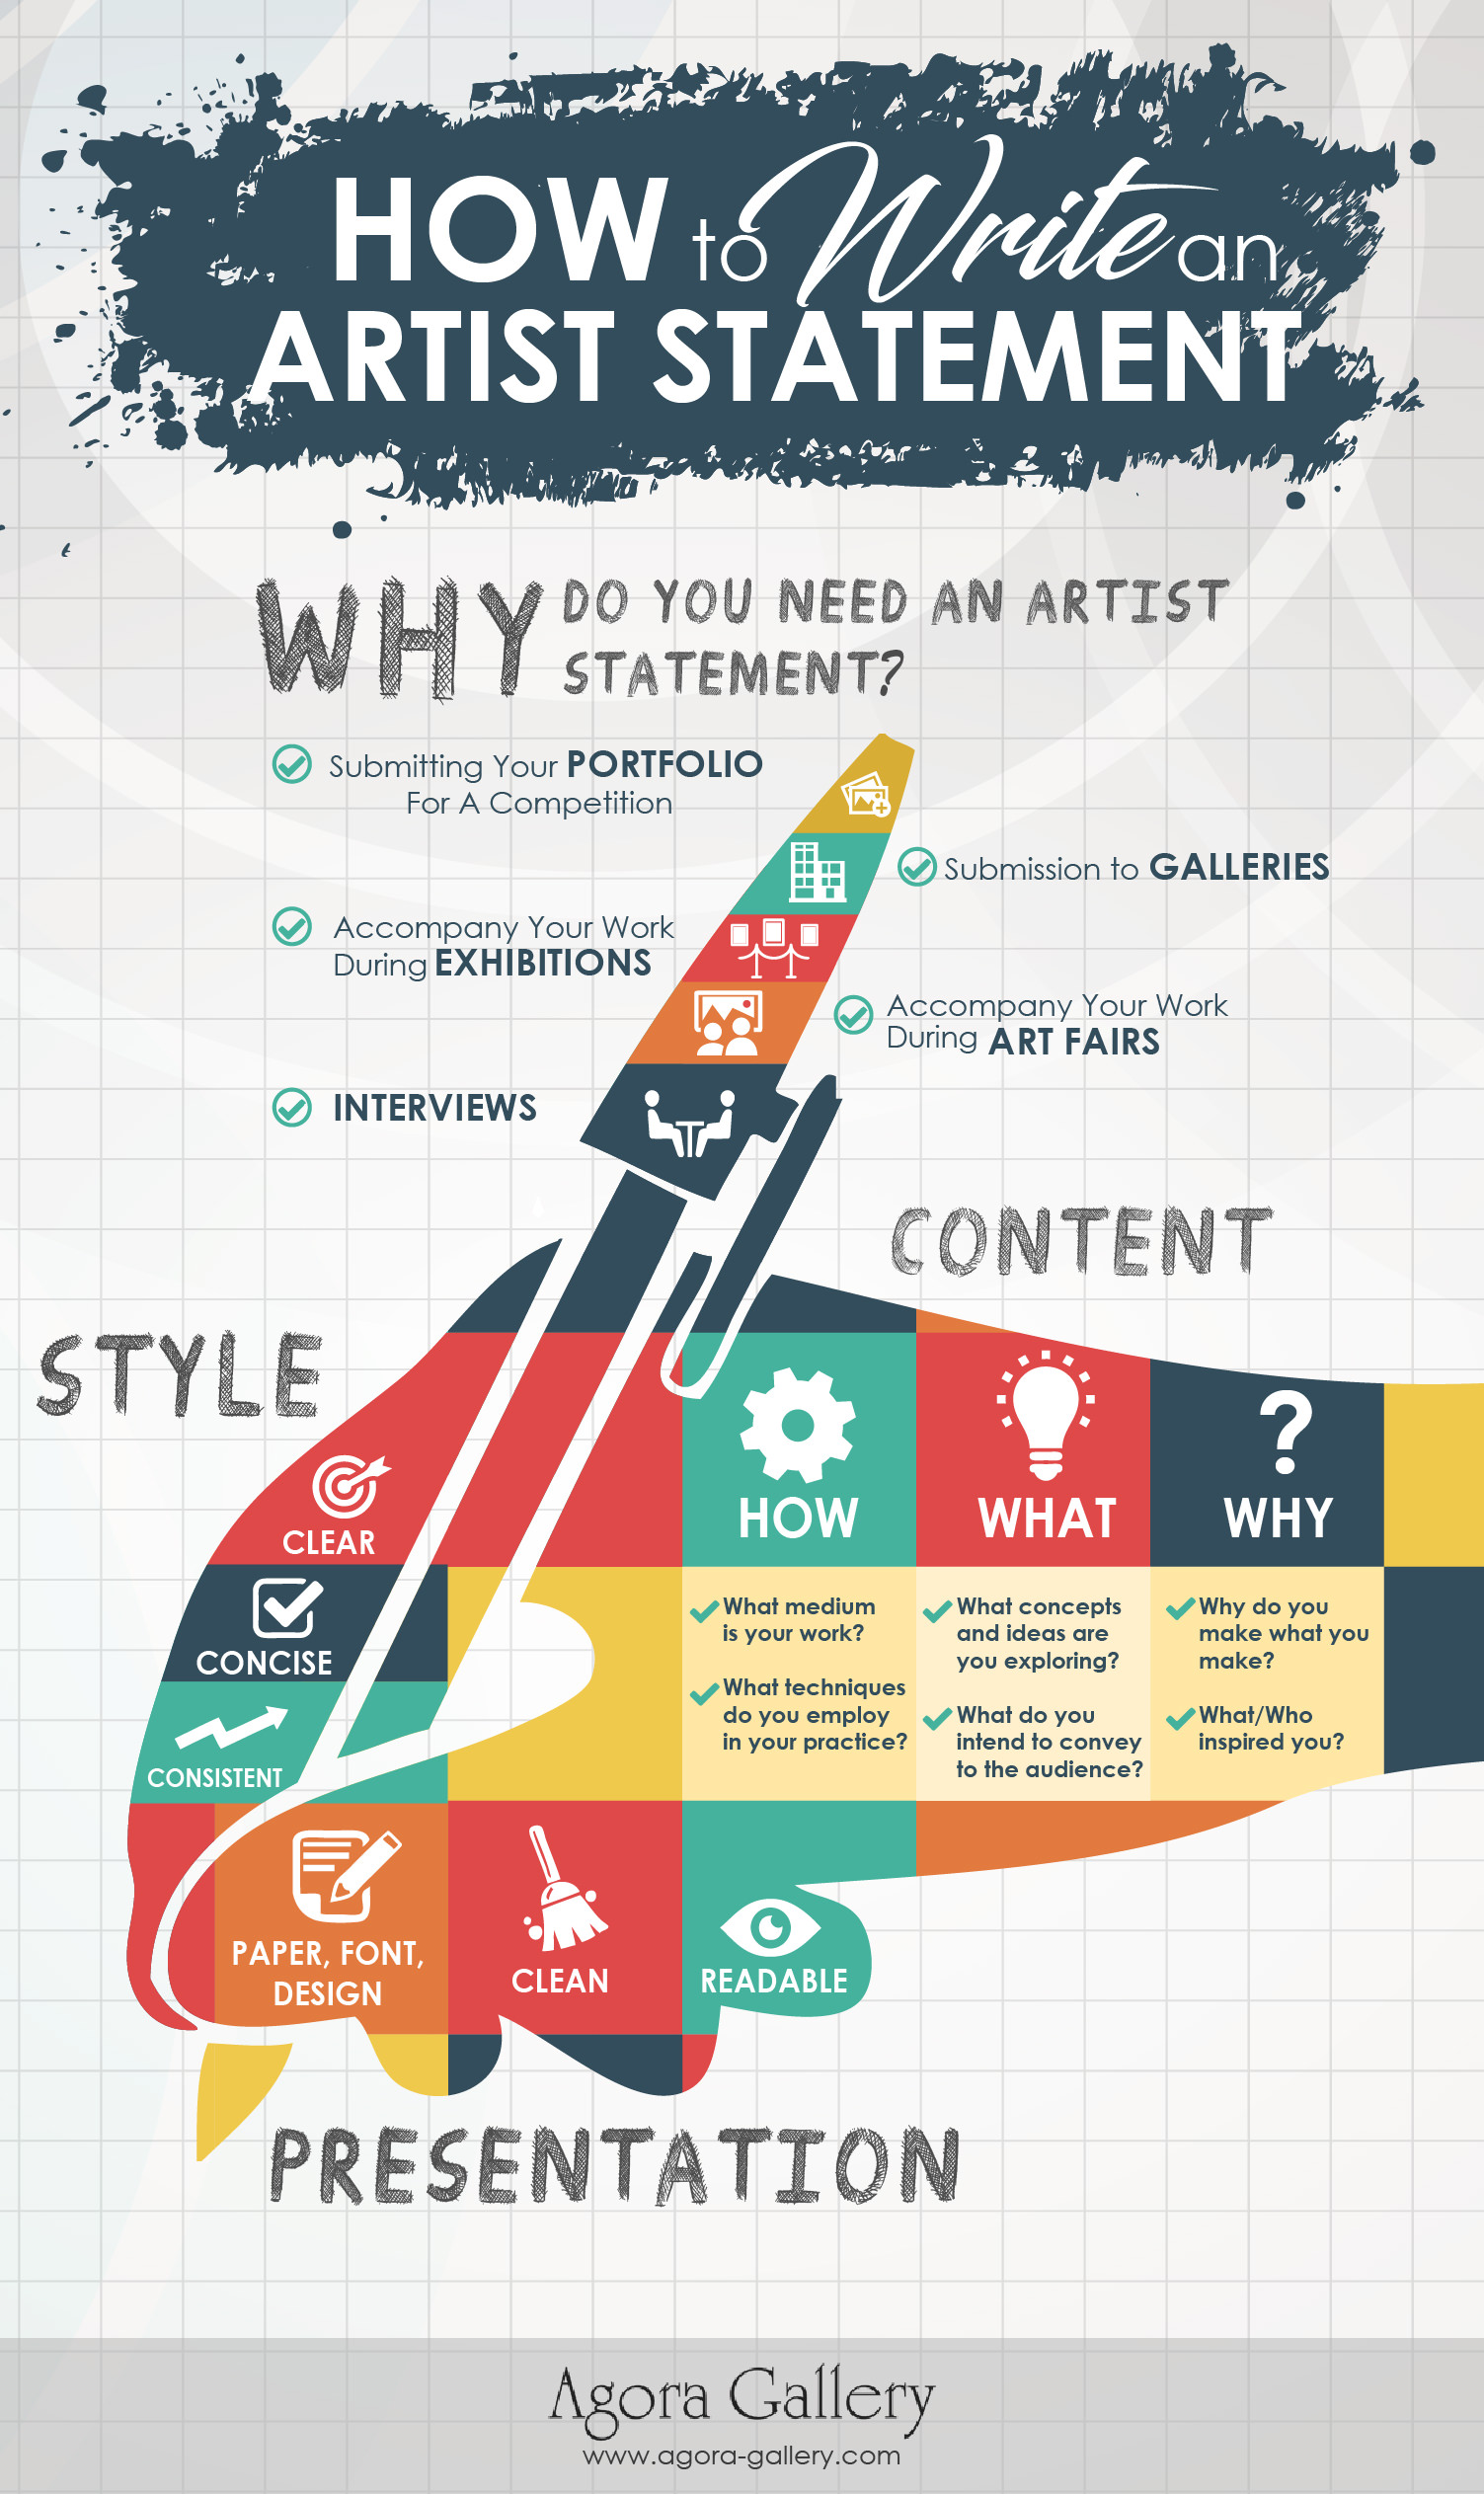 Art Gallery Artist How To Write An Artist Statement Tips From The Art Experts